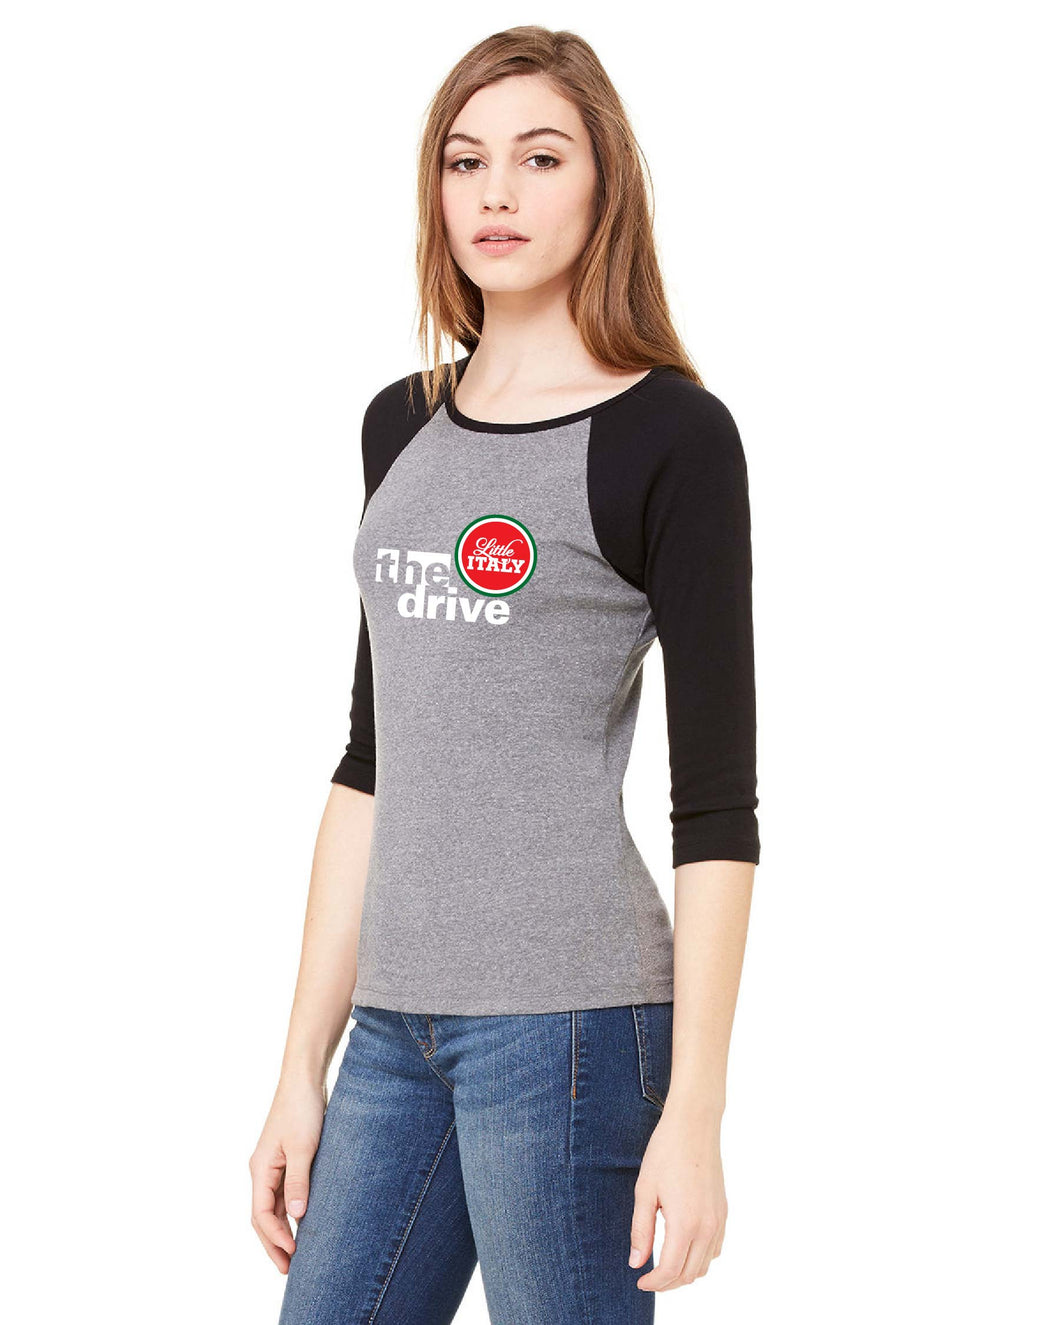 Ladies Baseball Tee - The Drive